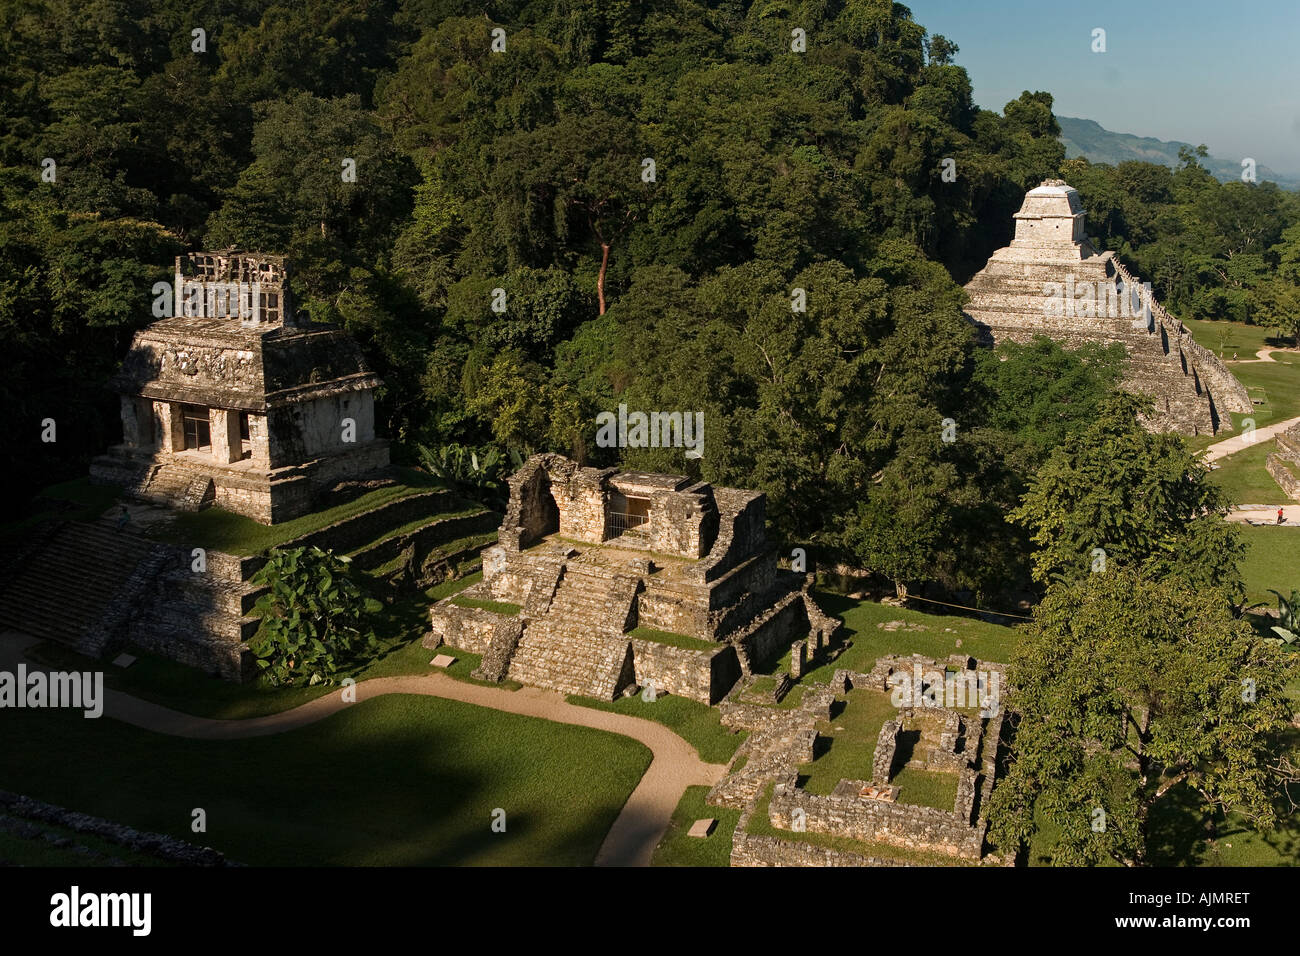 Mayan site of Palenque Chiapas Province Mexico 2005 - Stock Image